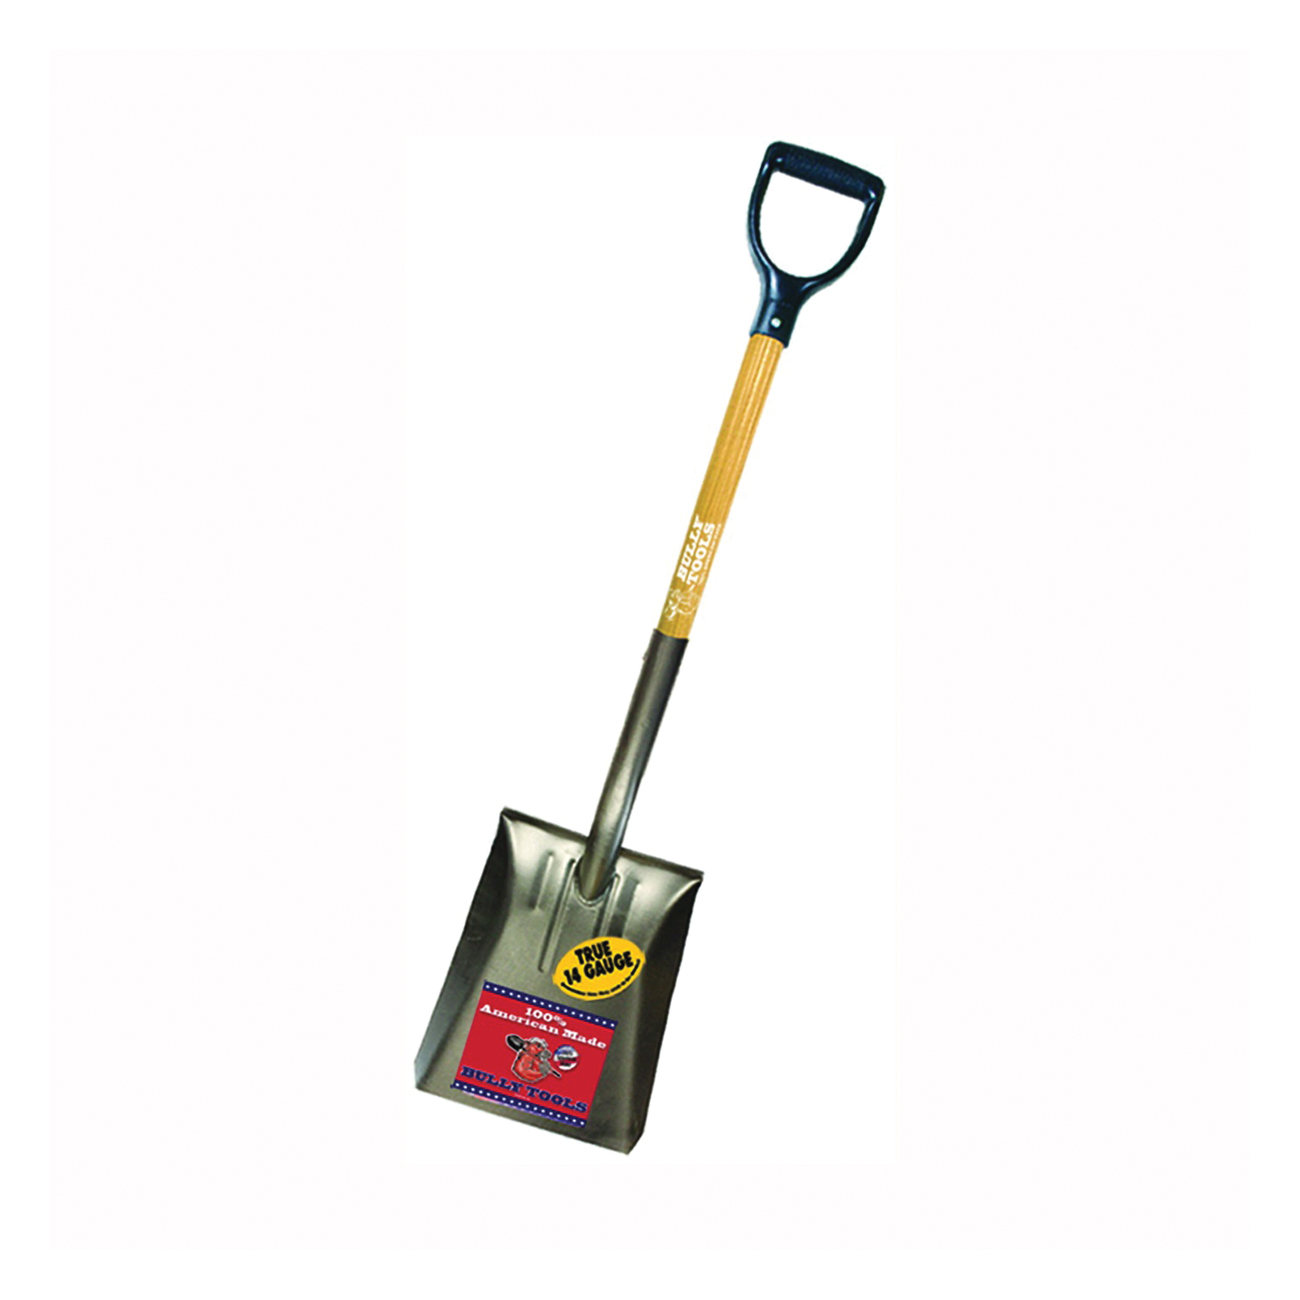 Picture of BULLY Tools 72520 Shovel, 9-1/2 in W Blade, 14 ga Gauge, Steel Blade, Ashwood Handle, D-Shaped Handle